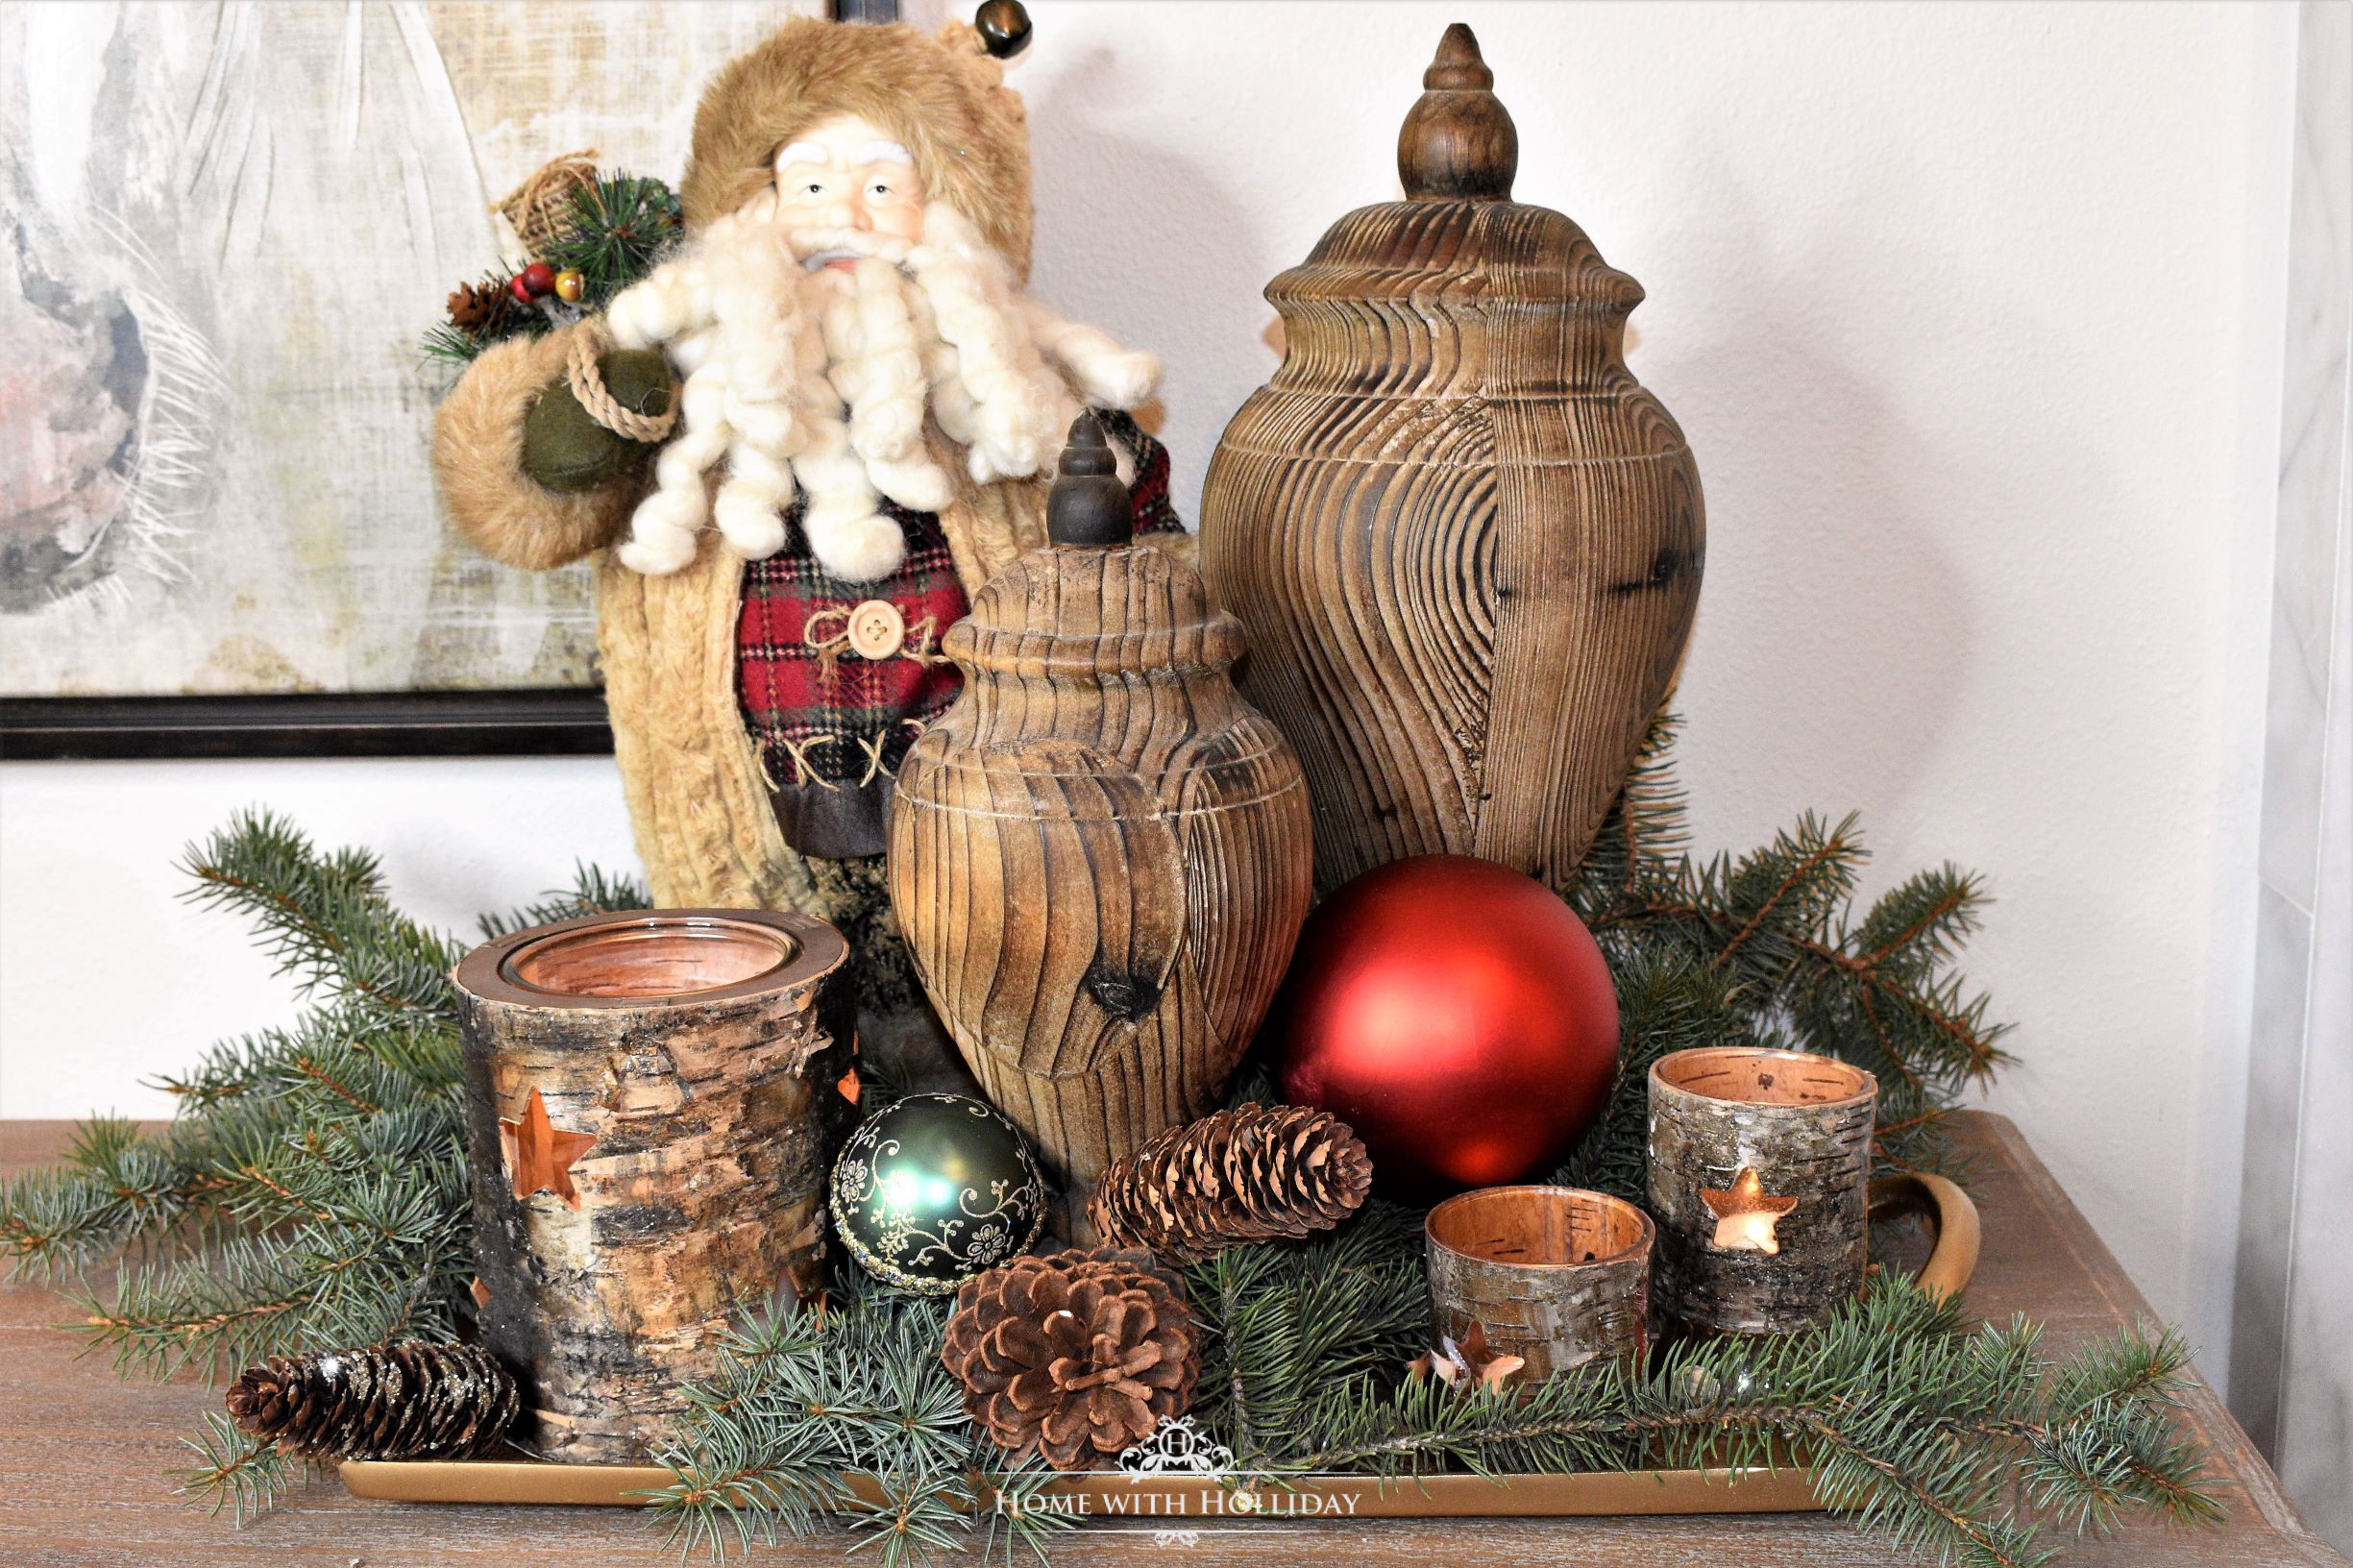 Decorating a Tray for Christmas 6 Ways - Rustic Santa - Home with Holliday